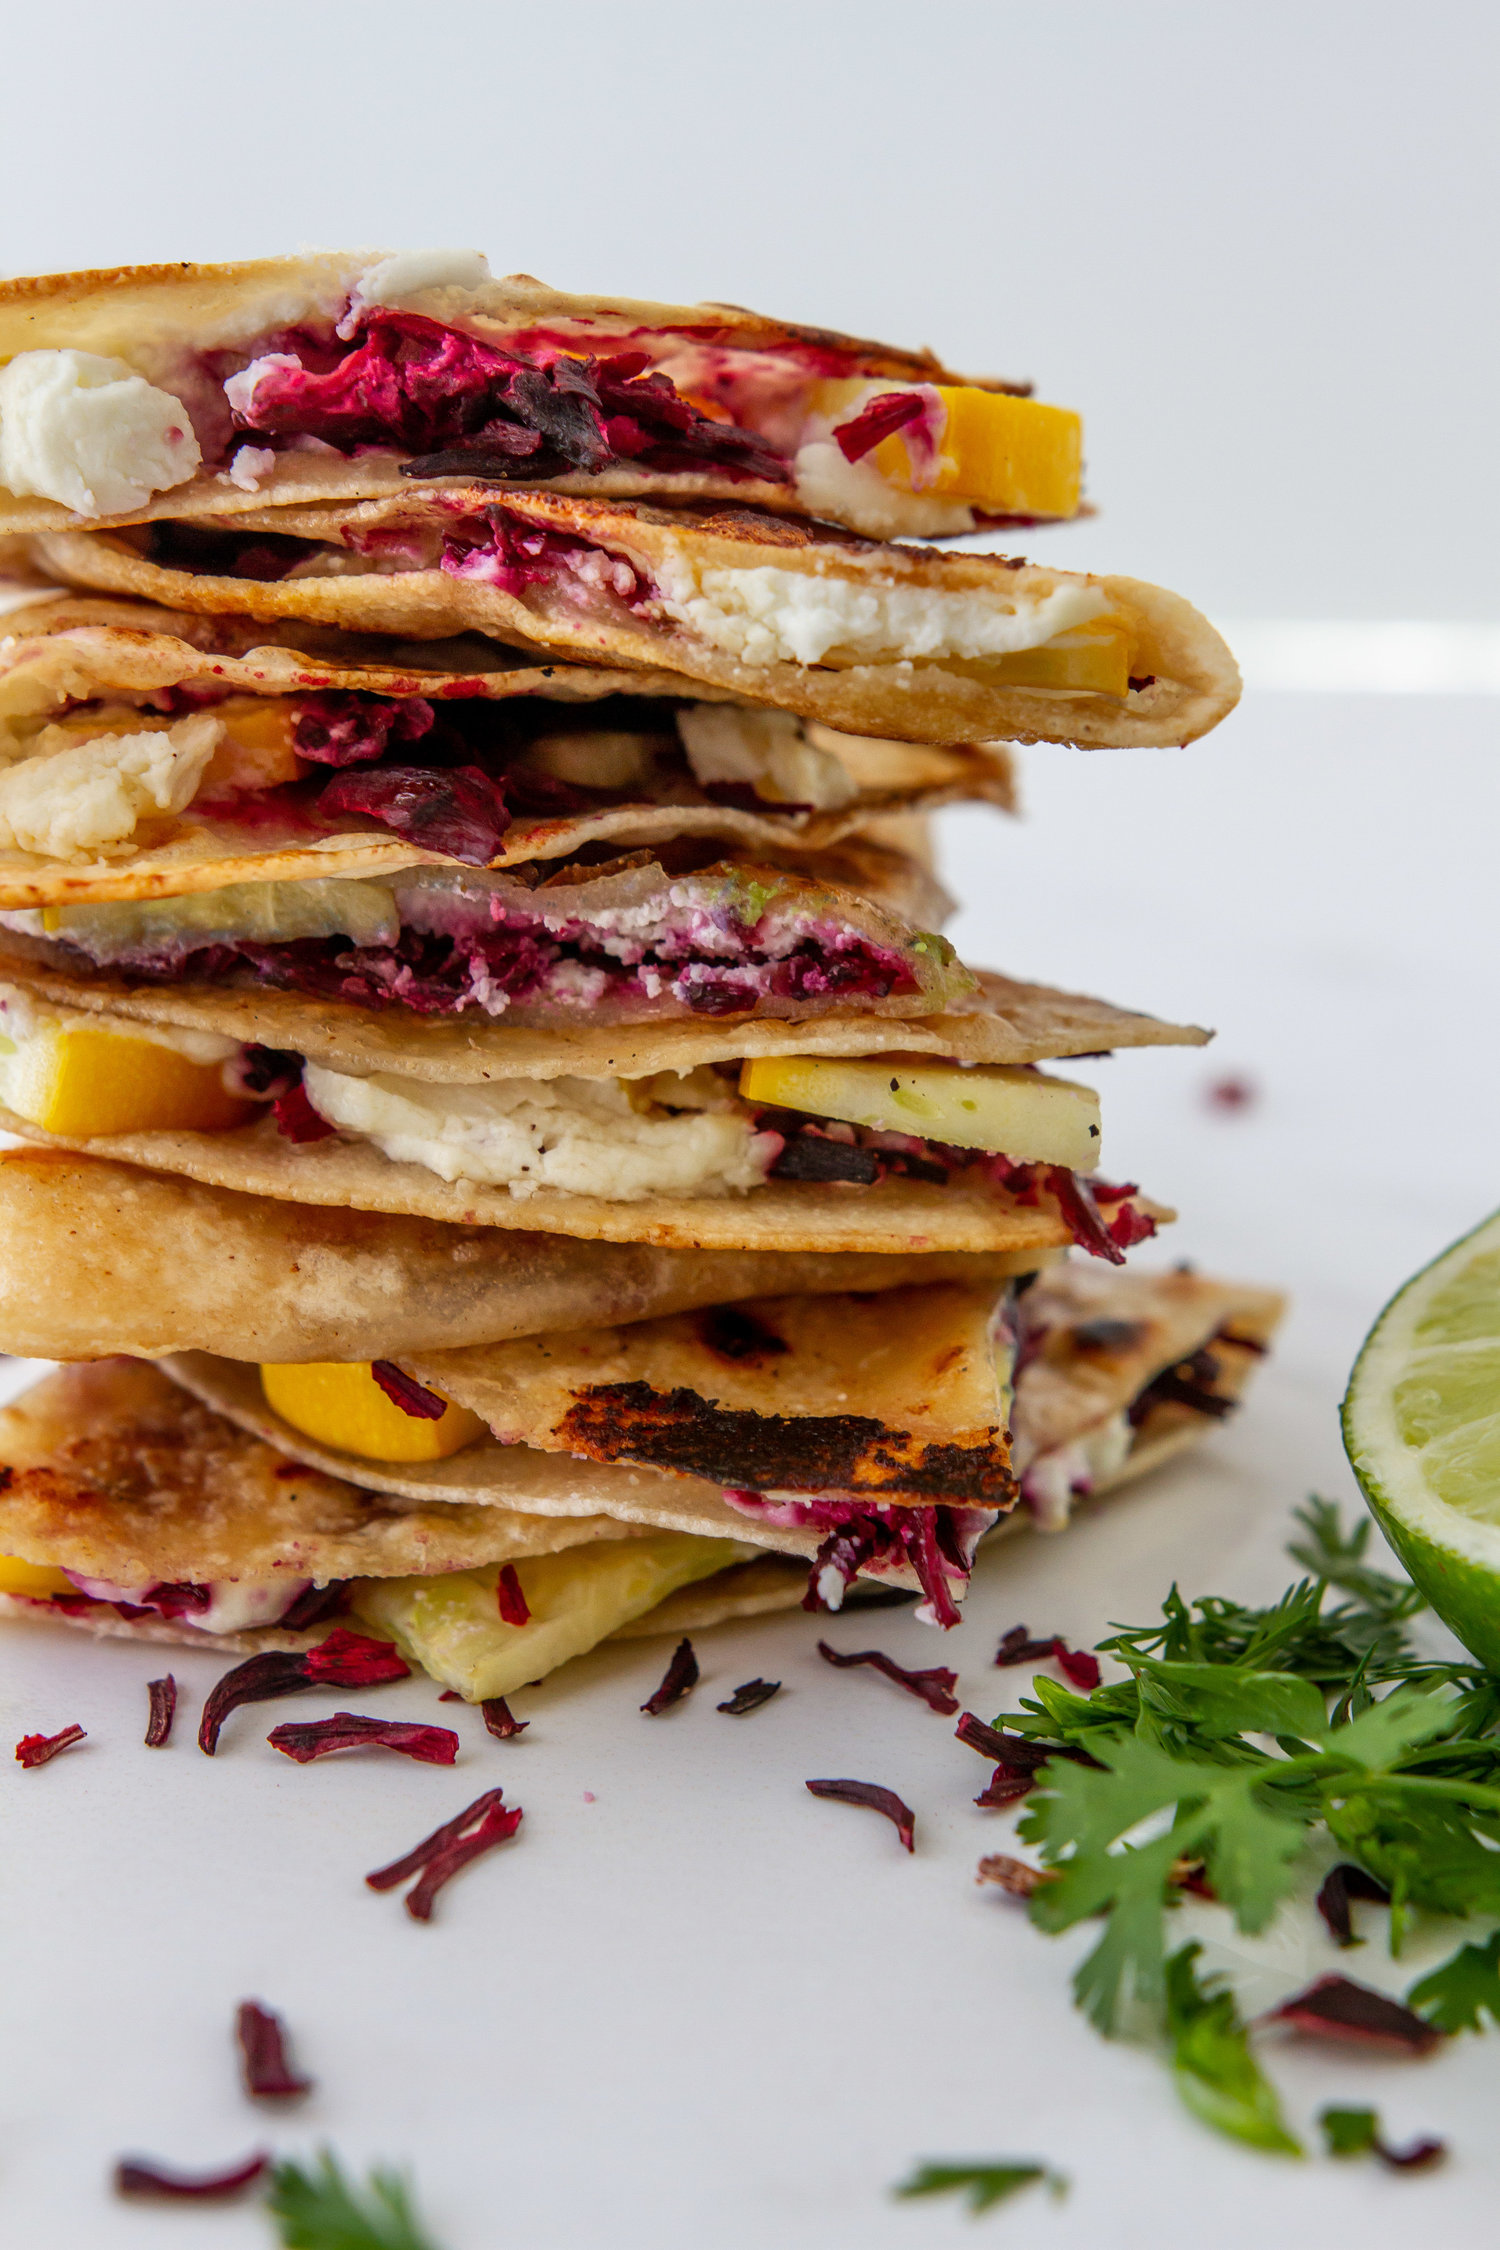 Goat Cheese Stuffed Quesadillas With Hibiscus And Summer Squash